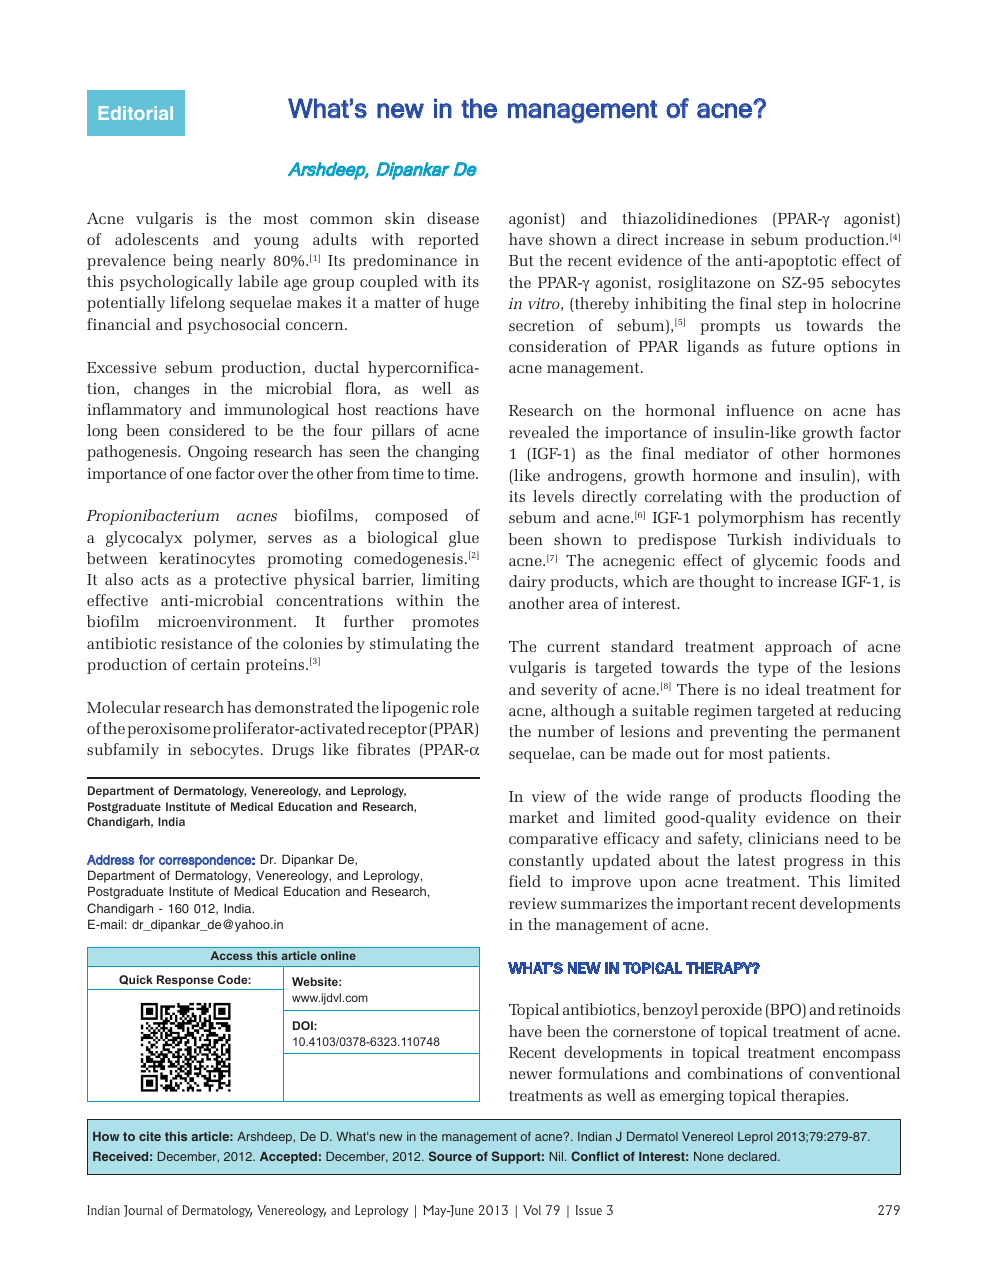 What′s new in the management of acne? – topic of research